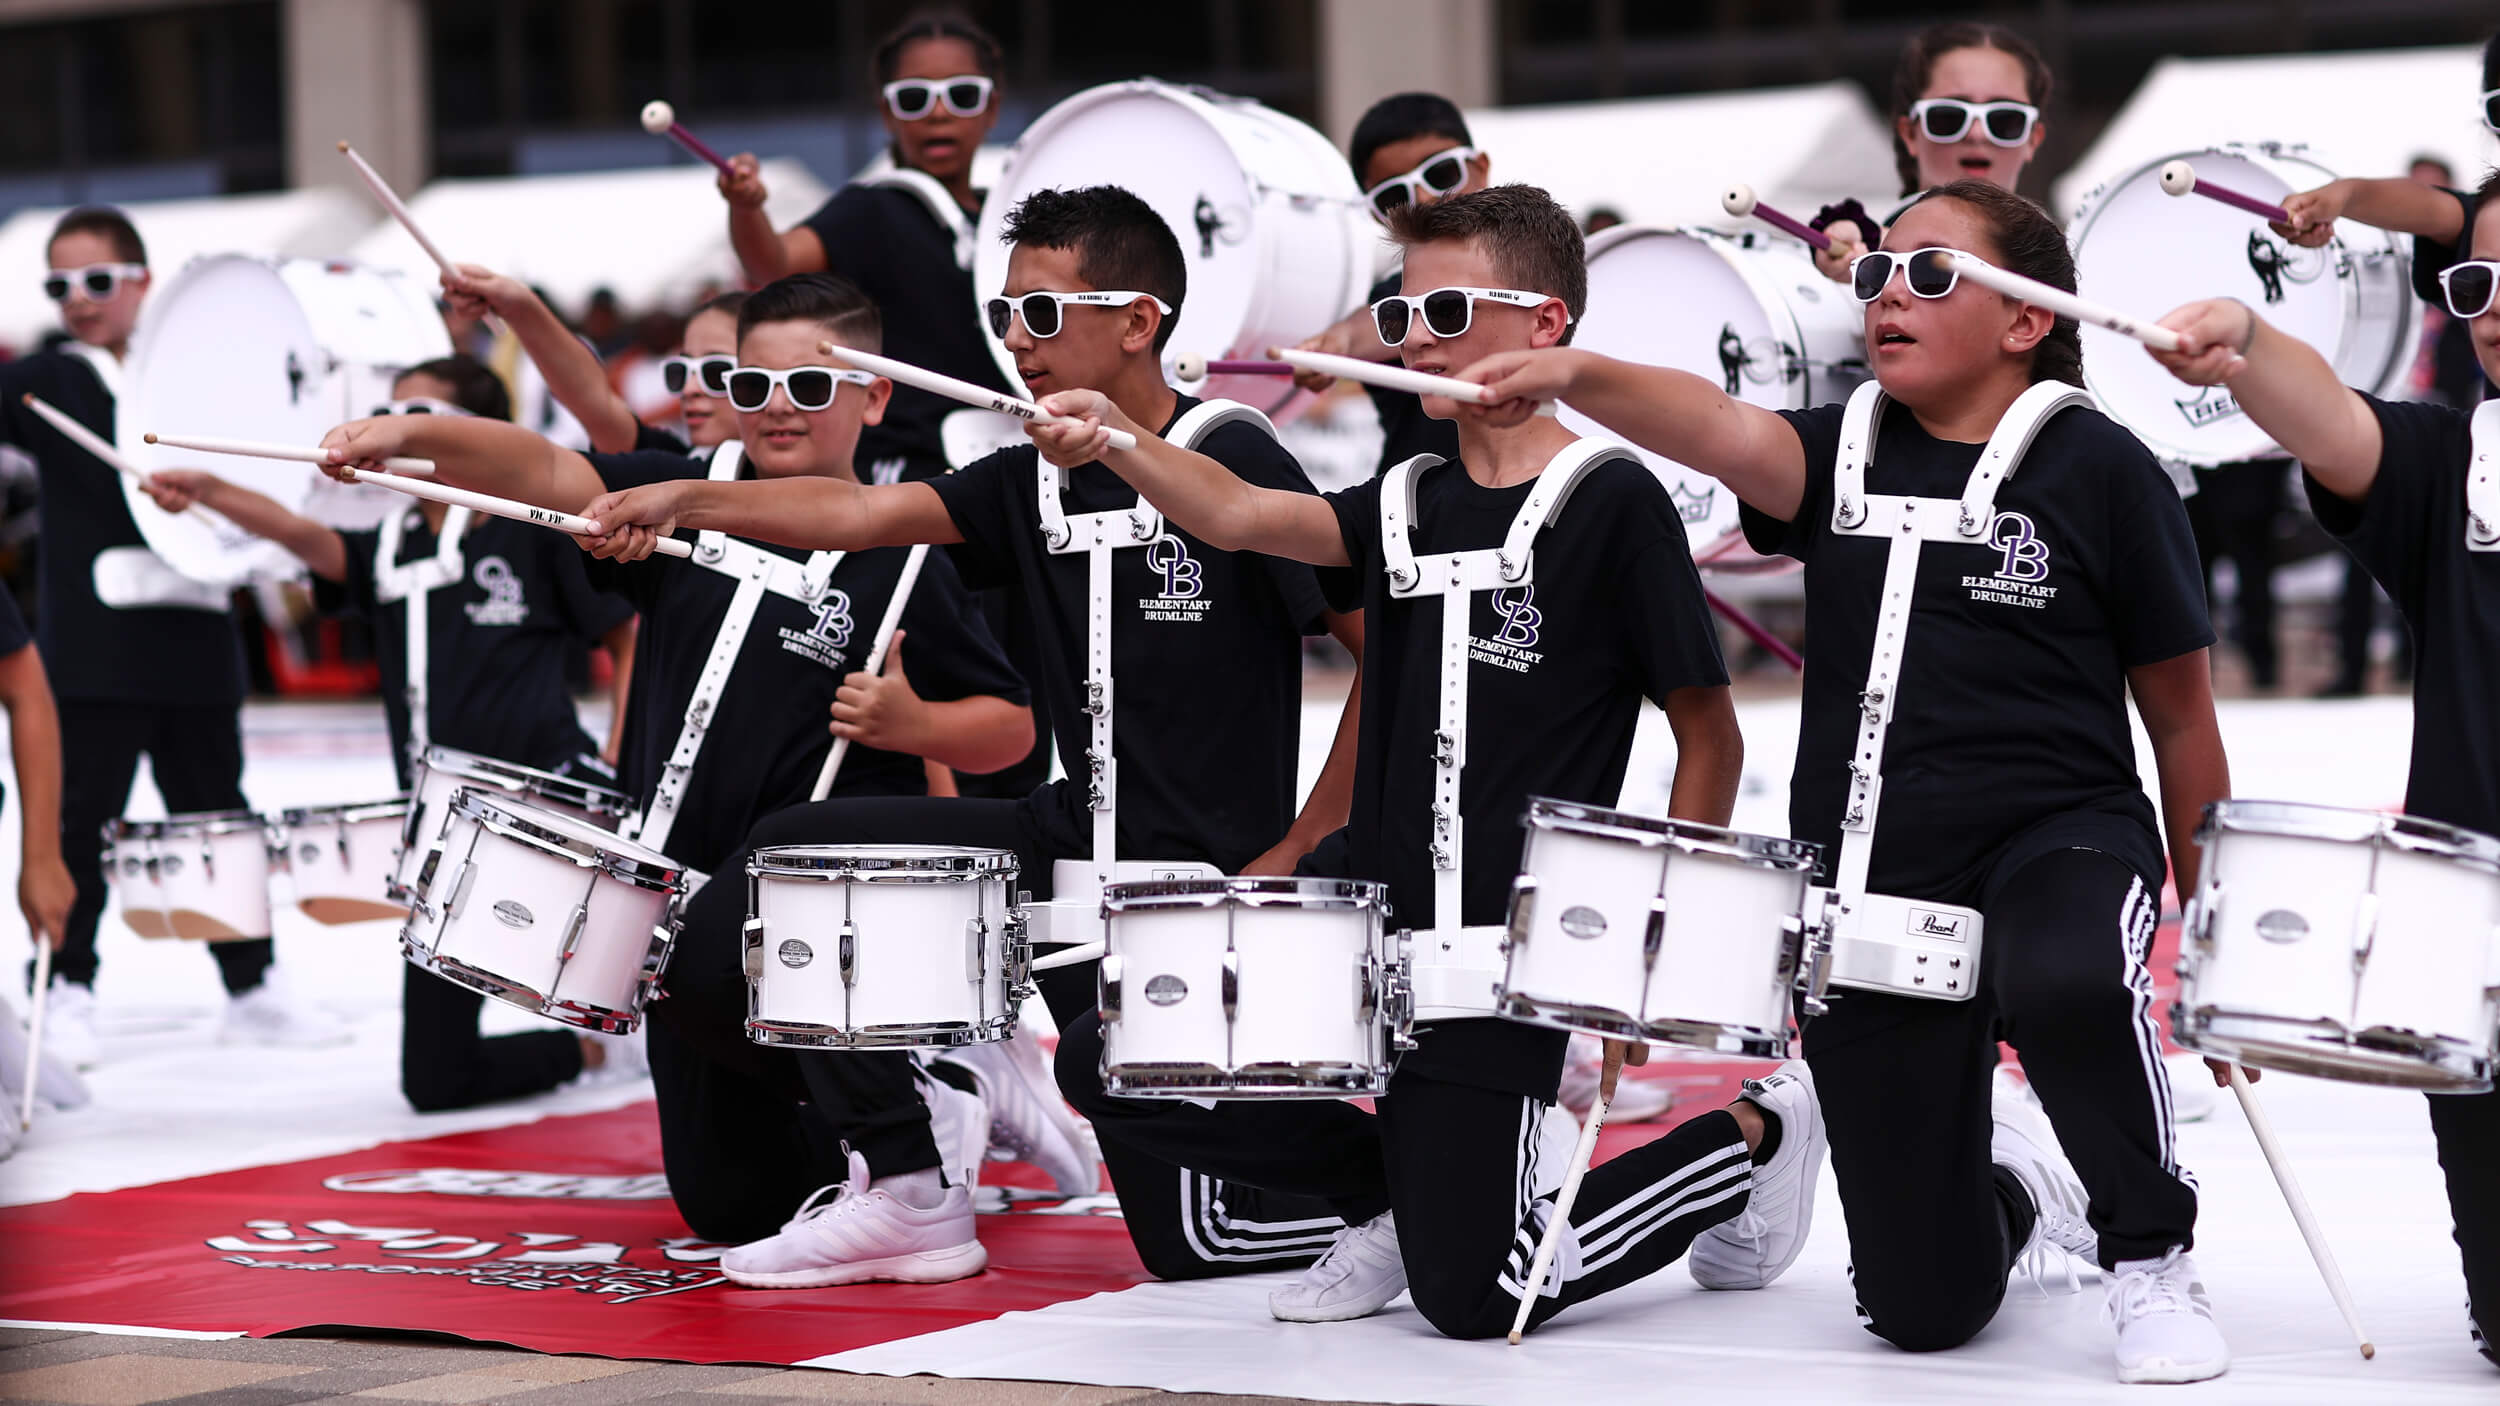 Everyone gets involved at '19 DrumLine Battle Indy